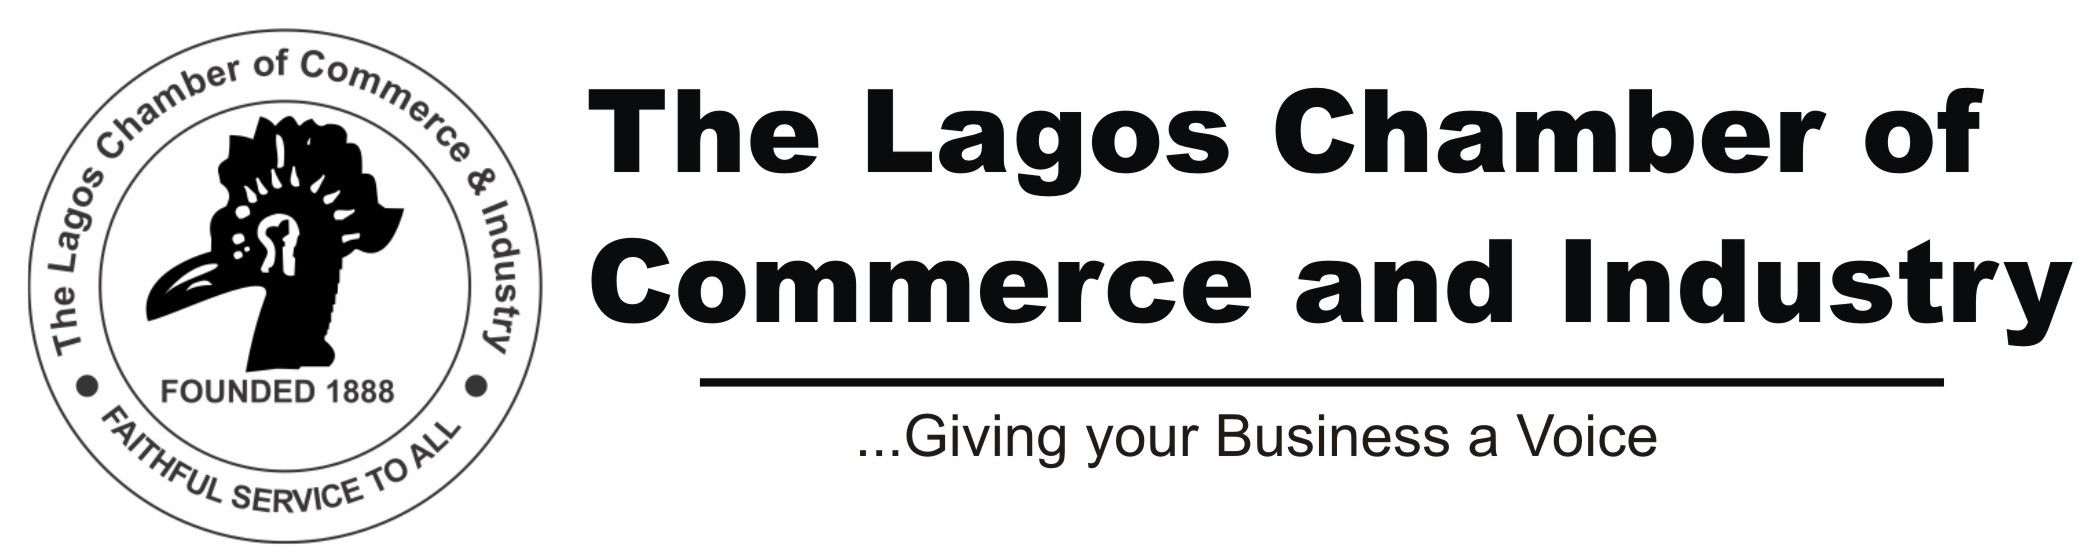 LCCI supports SMEs through trade promotion, policy advocacy